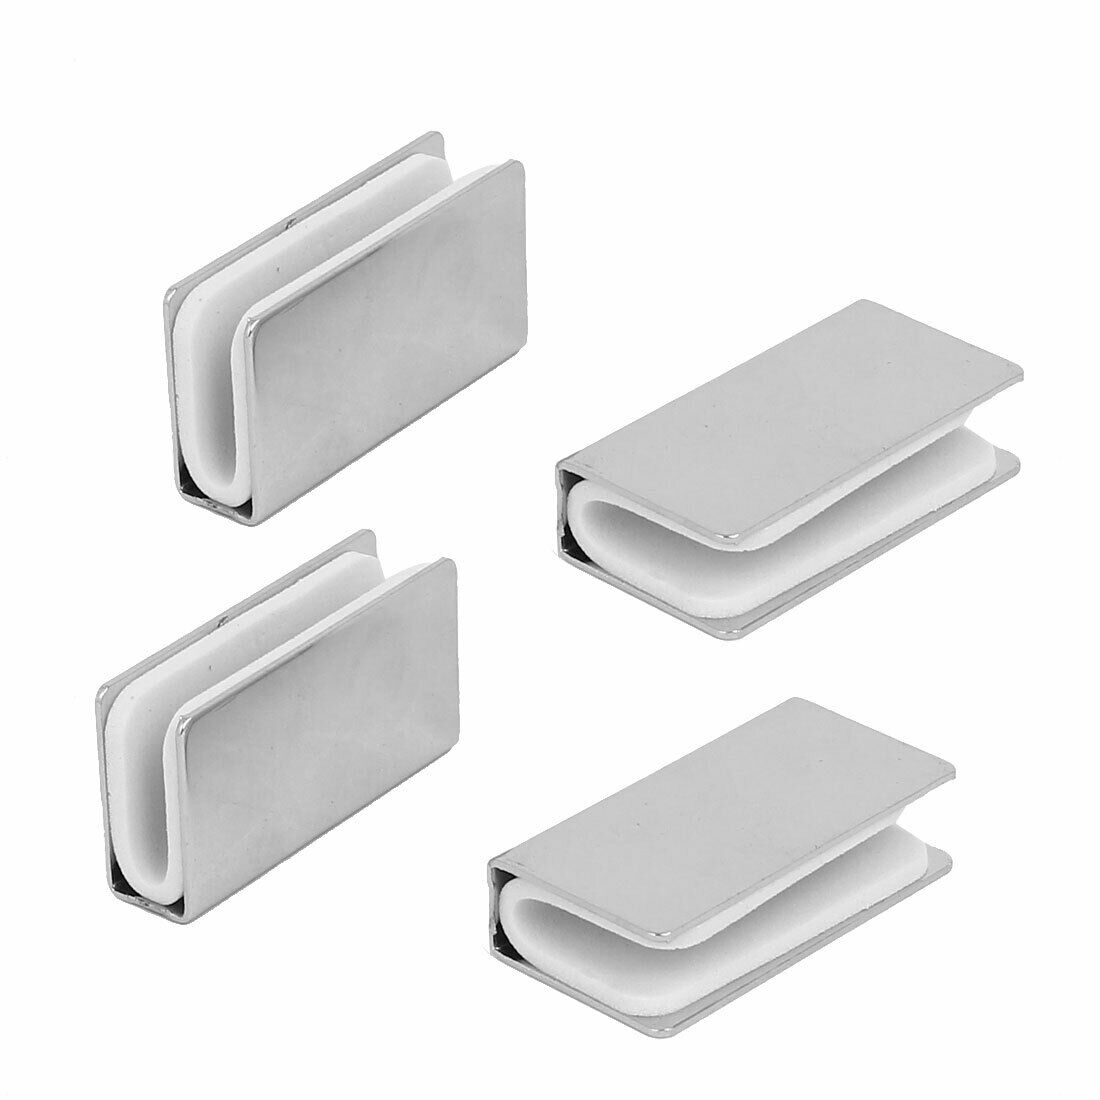 5mm Thickness Metal Rectangle Glass Shelf Clip Clamps Bracket Support 4pcs